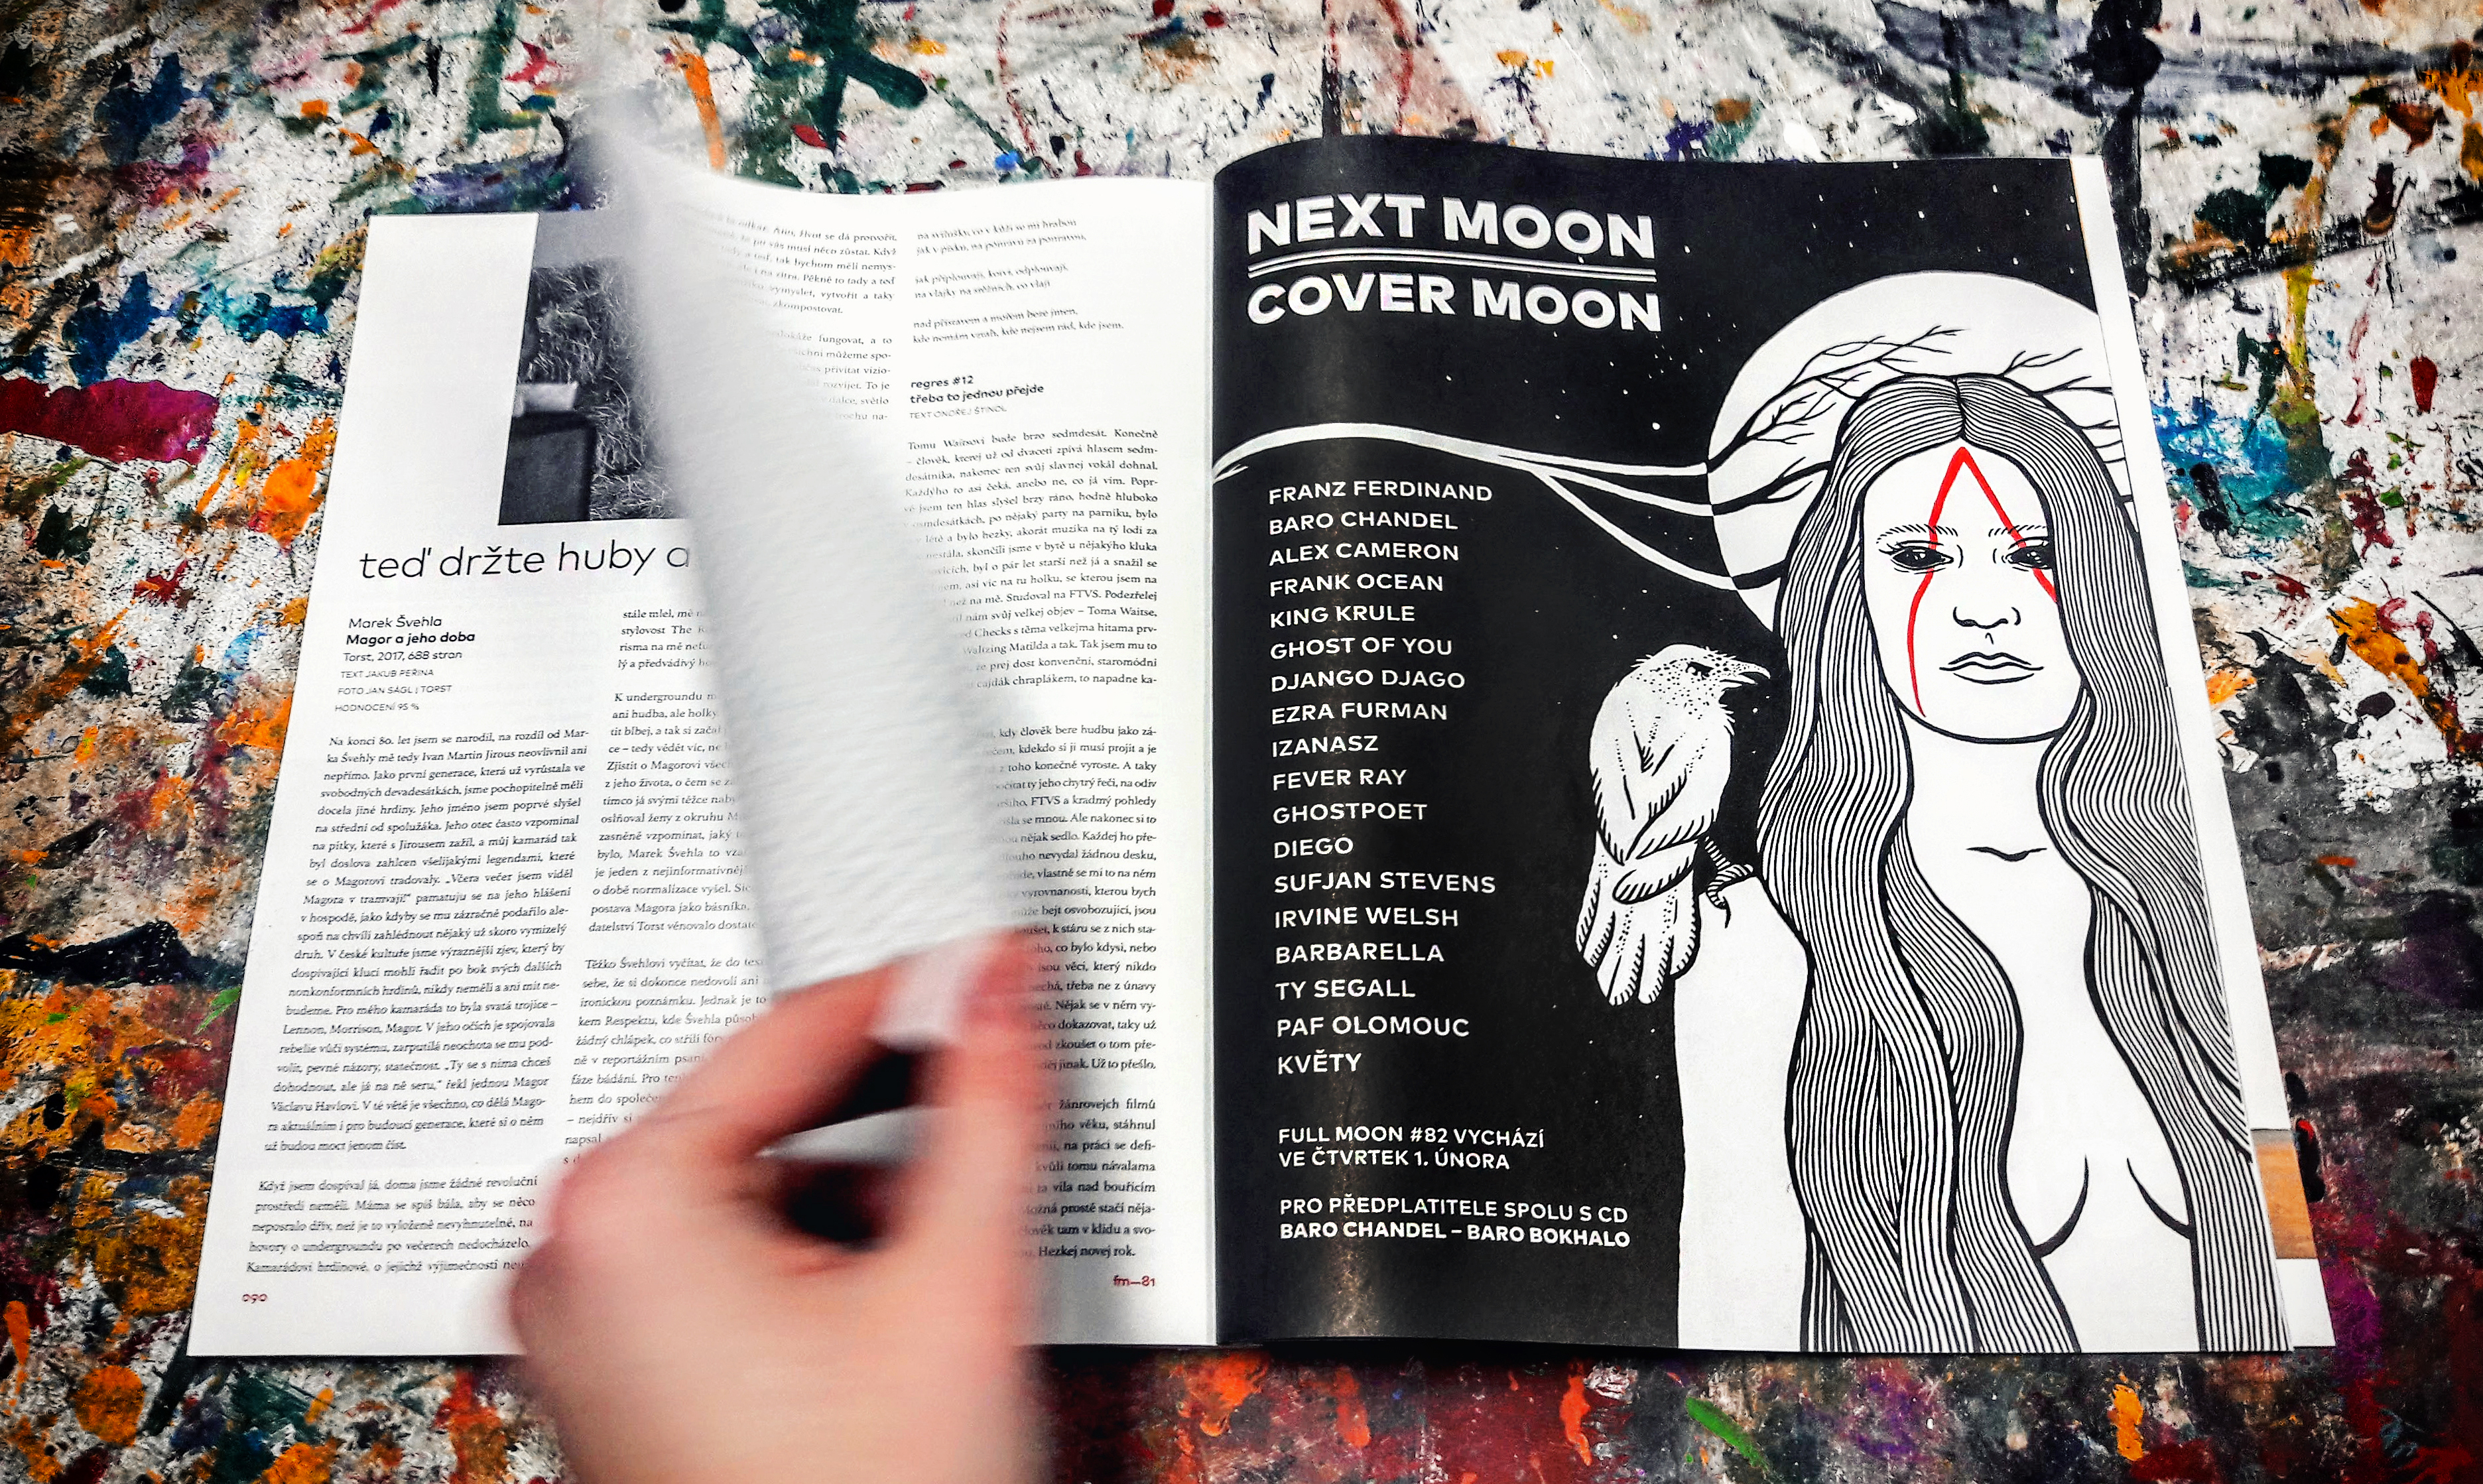 Cover Moon 2017